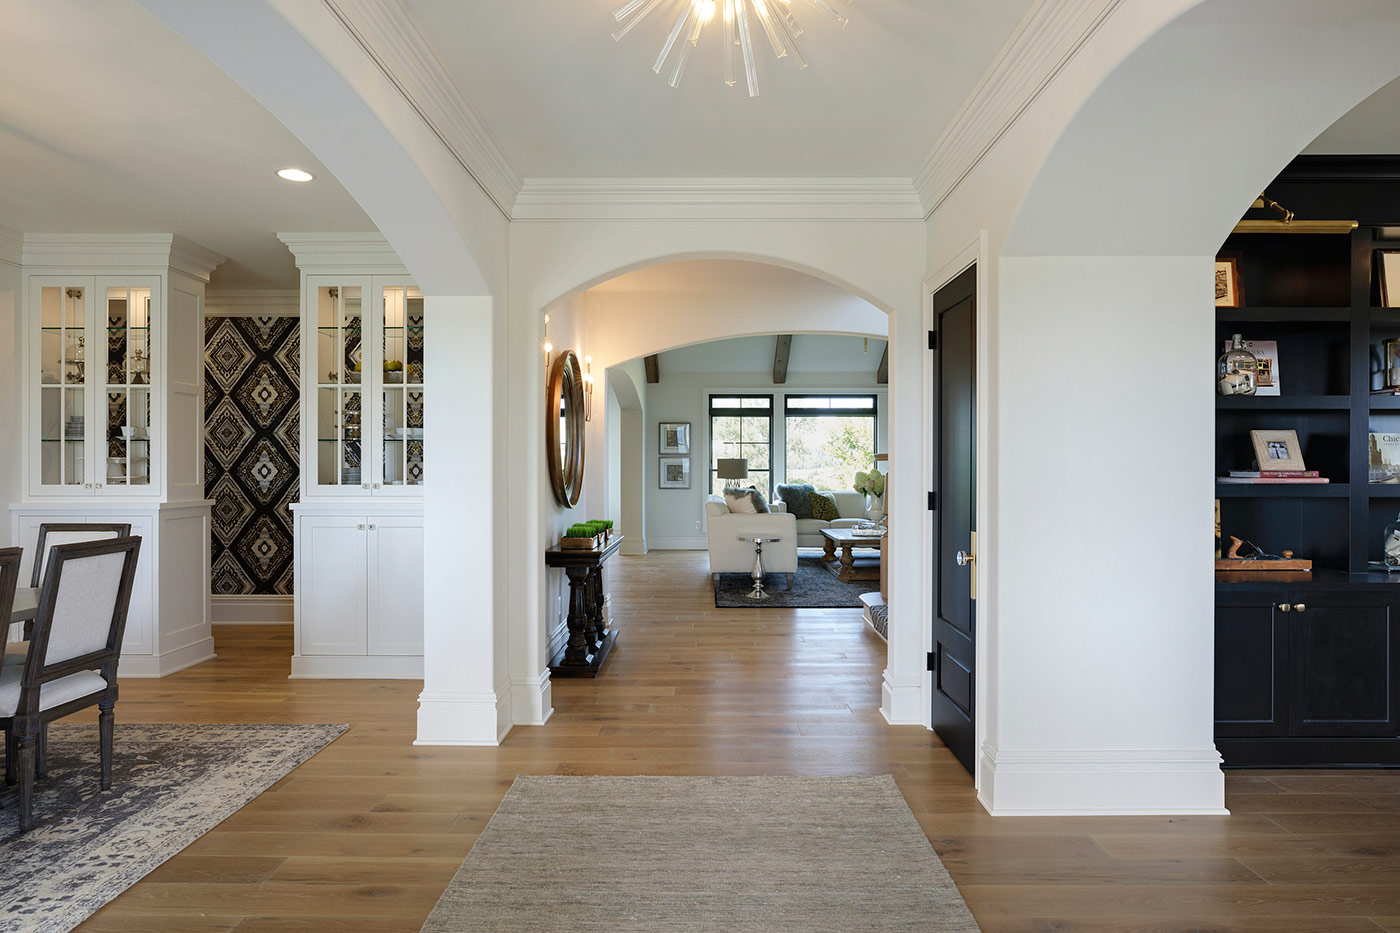 Model Home Foyer Pictures : Custom model home builders & new communities in